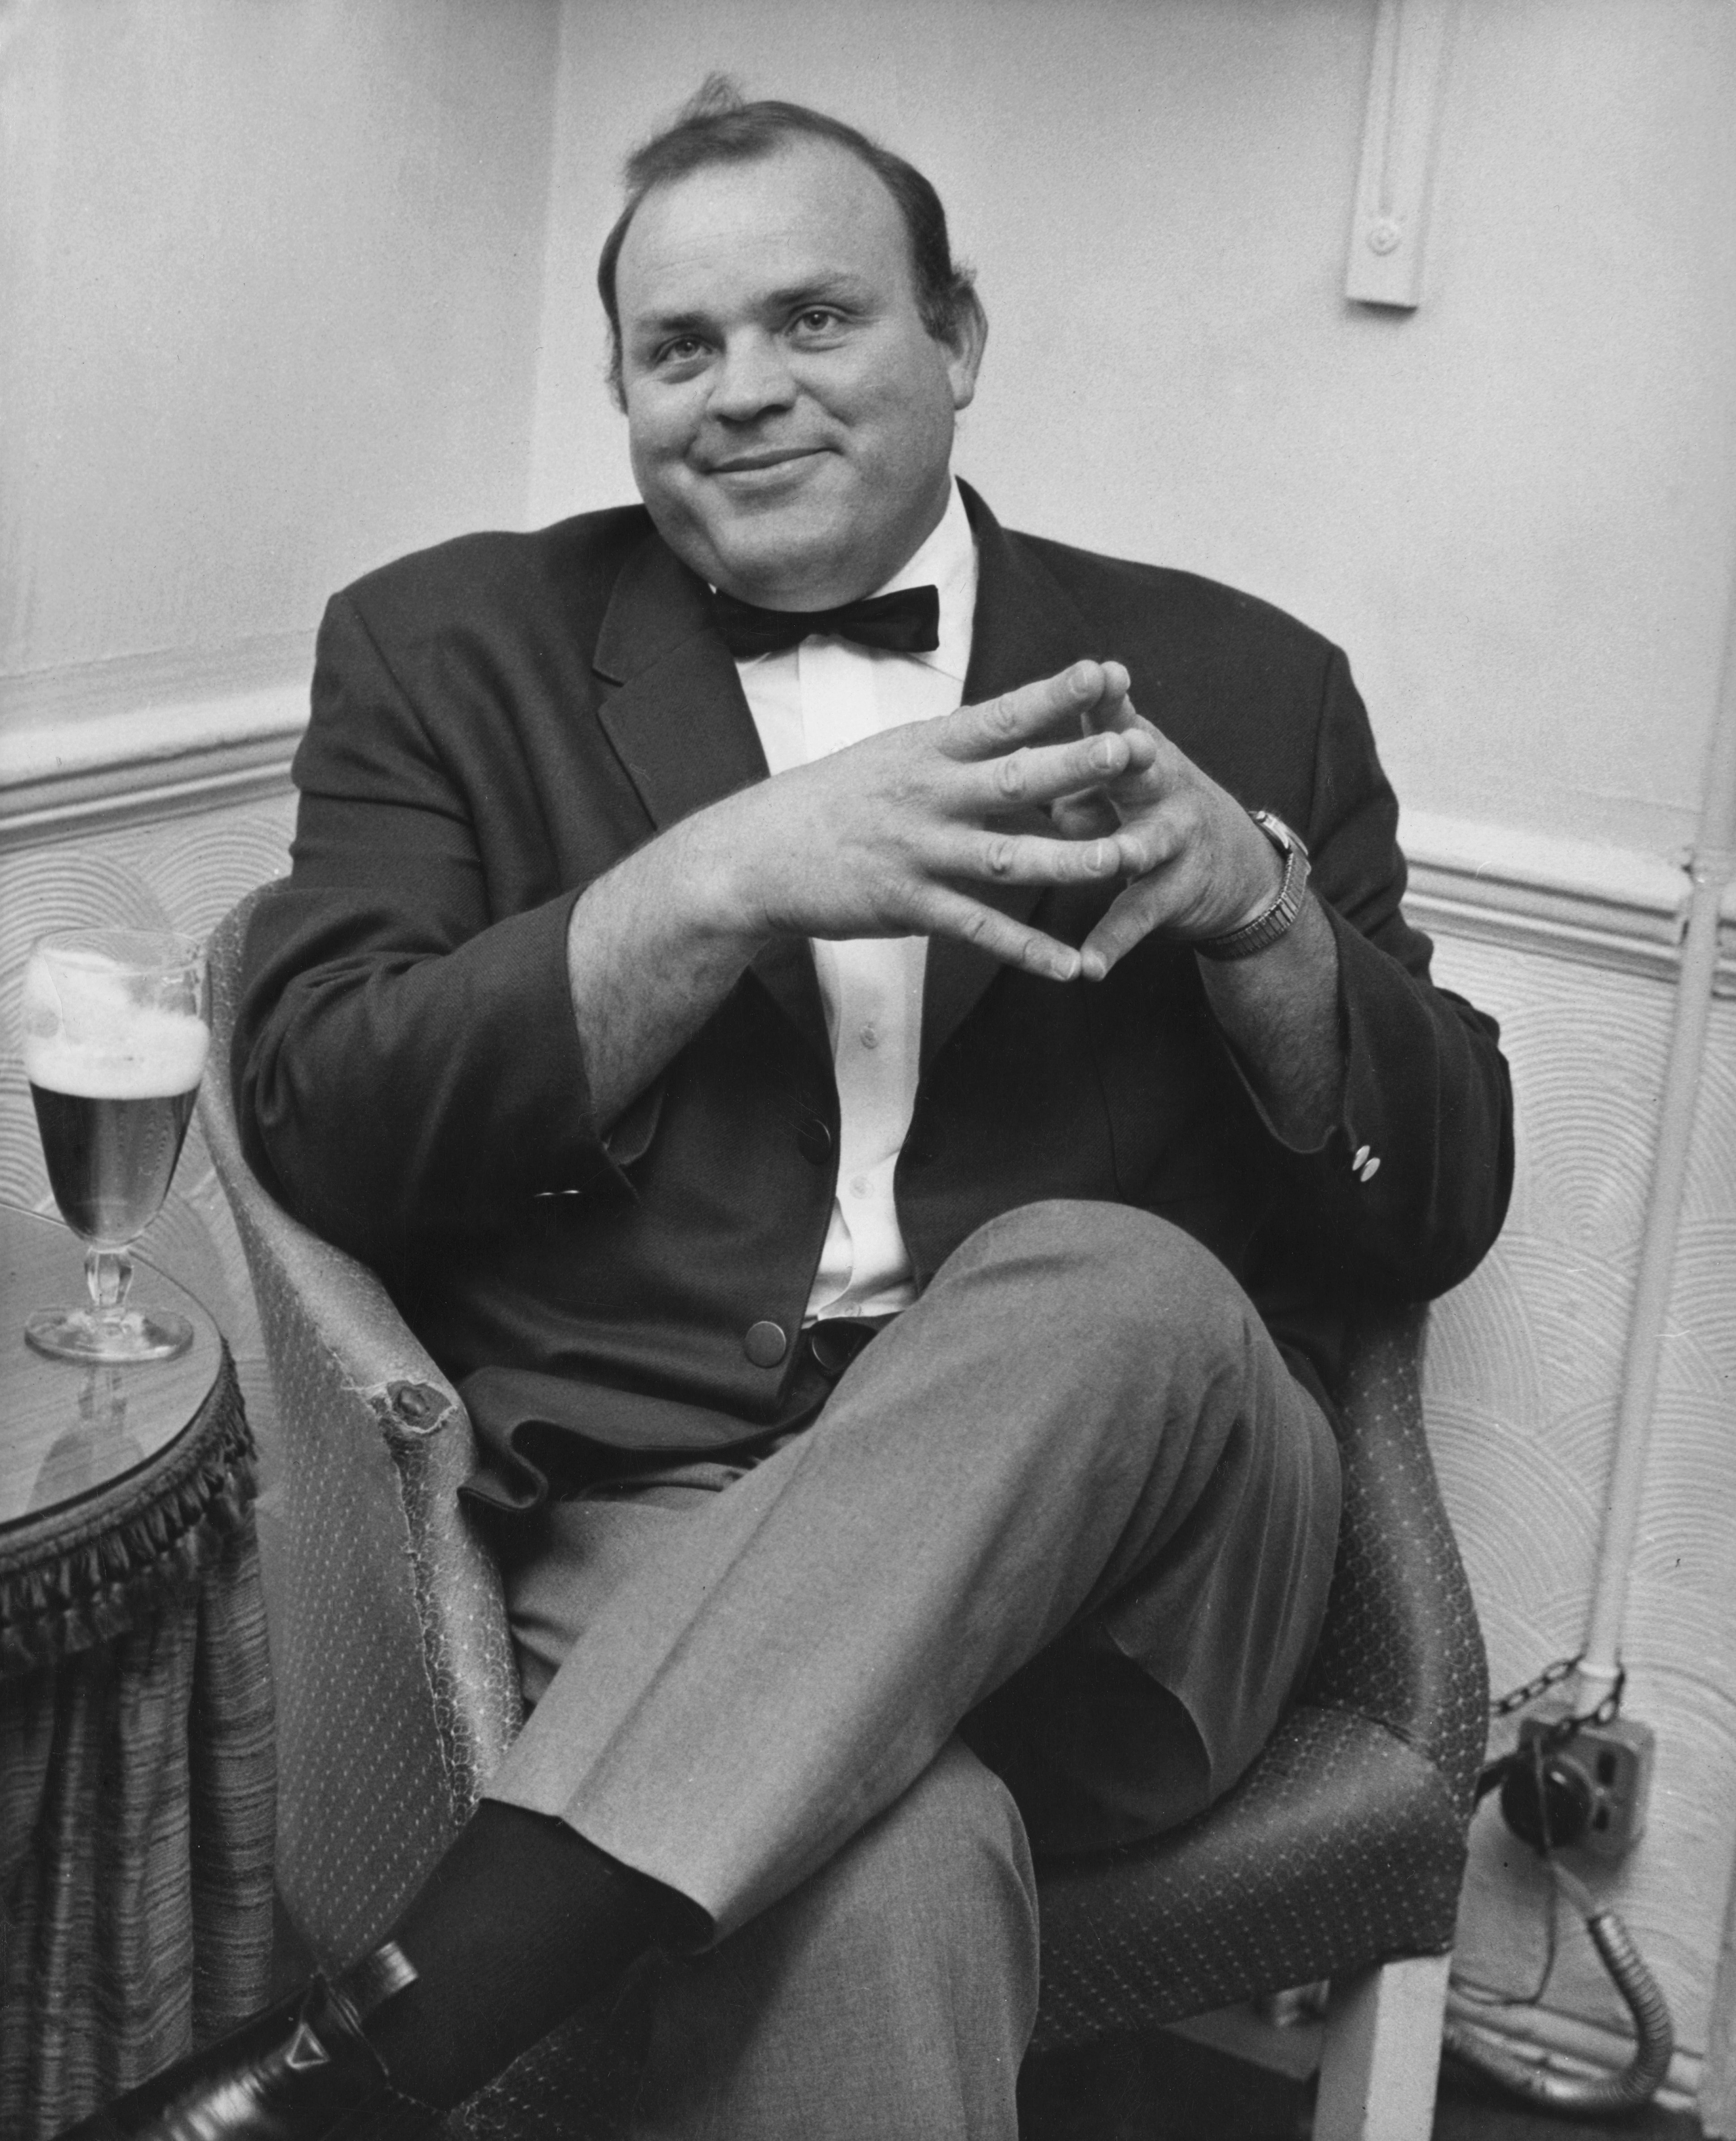 Image Source: Getty Images/ Dan Blocker sitting on a chair